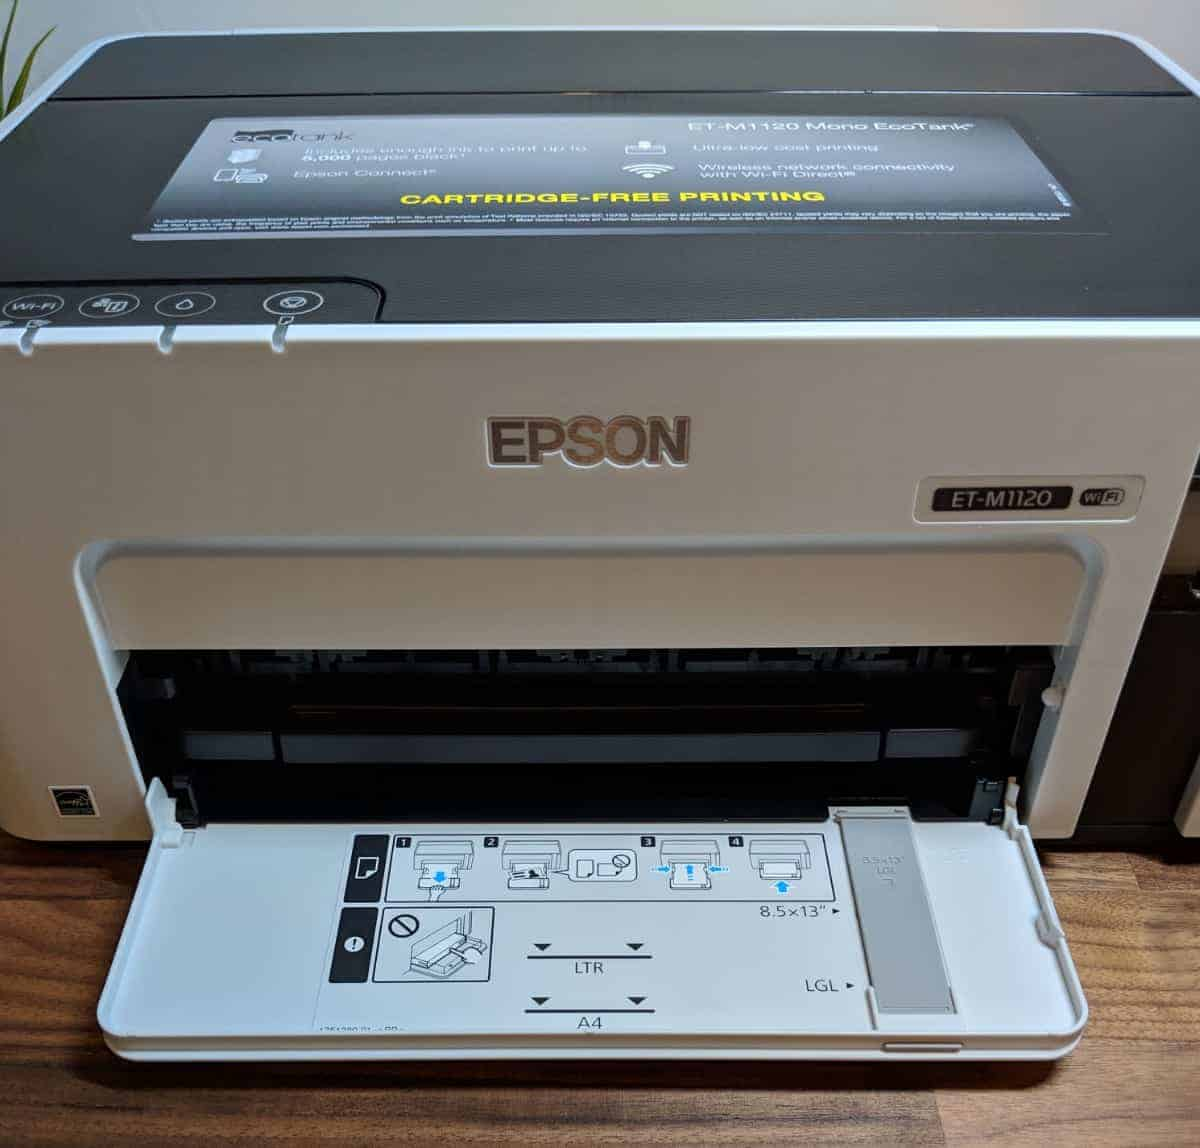 Epson-M1120-Photos-07 Epson EcoTank ET-M1120 Review